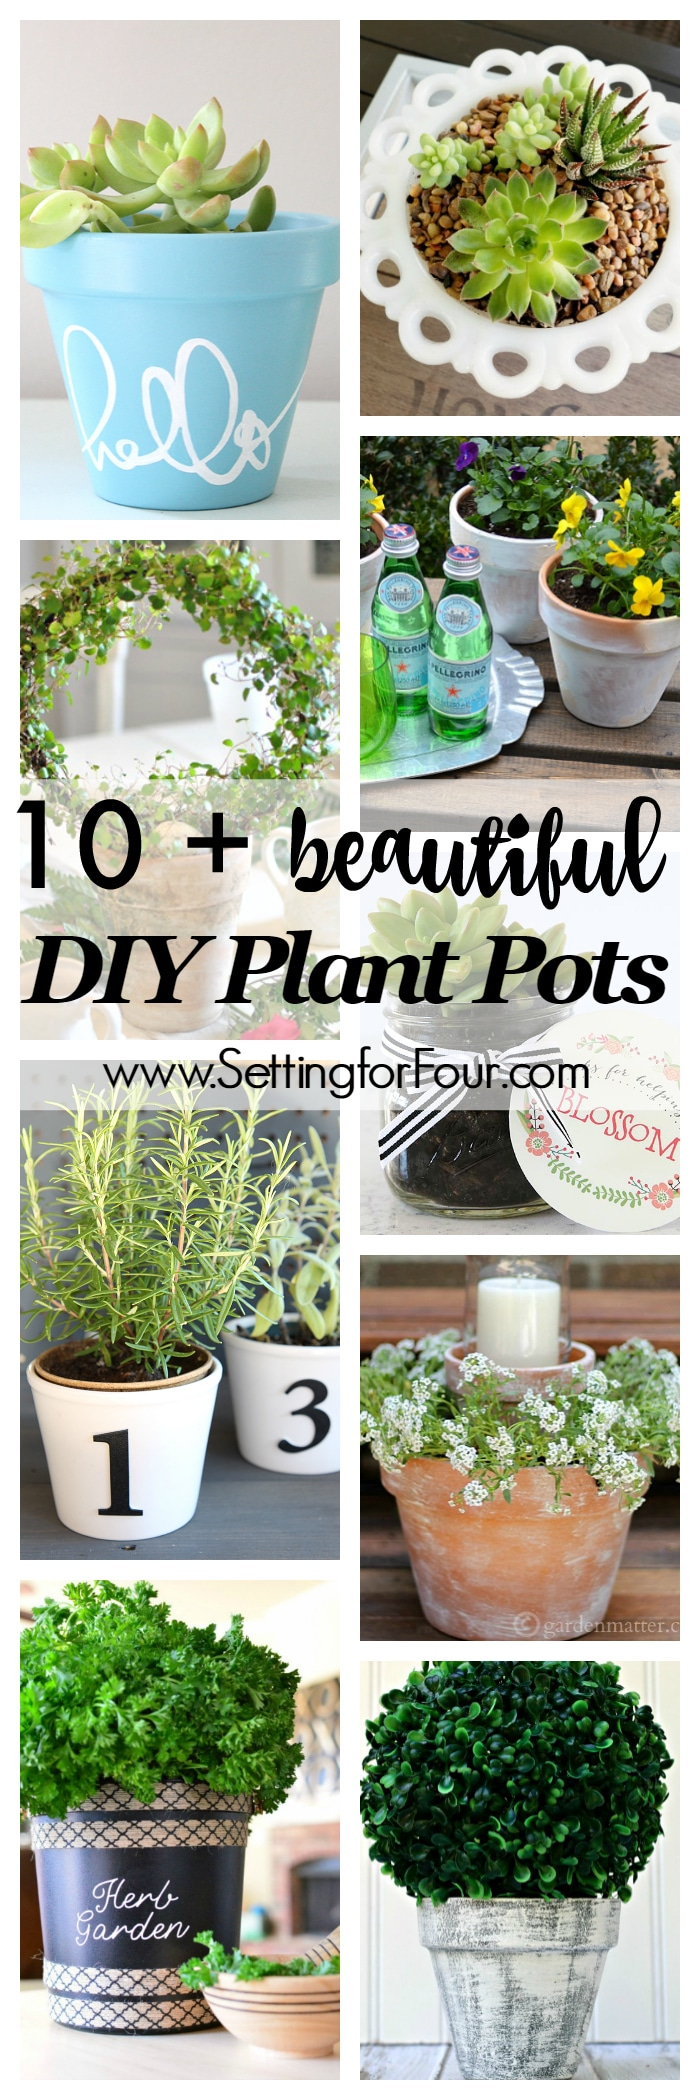 10 plus beautiful DIY Plant Pots - Home and Garden ideas! Save money by making your own planters and pots for your herbs, succulents and flowers.